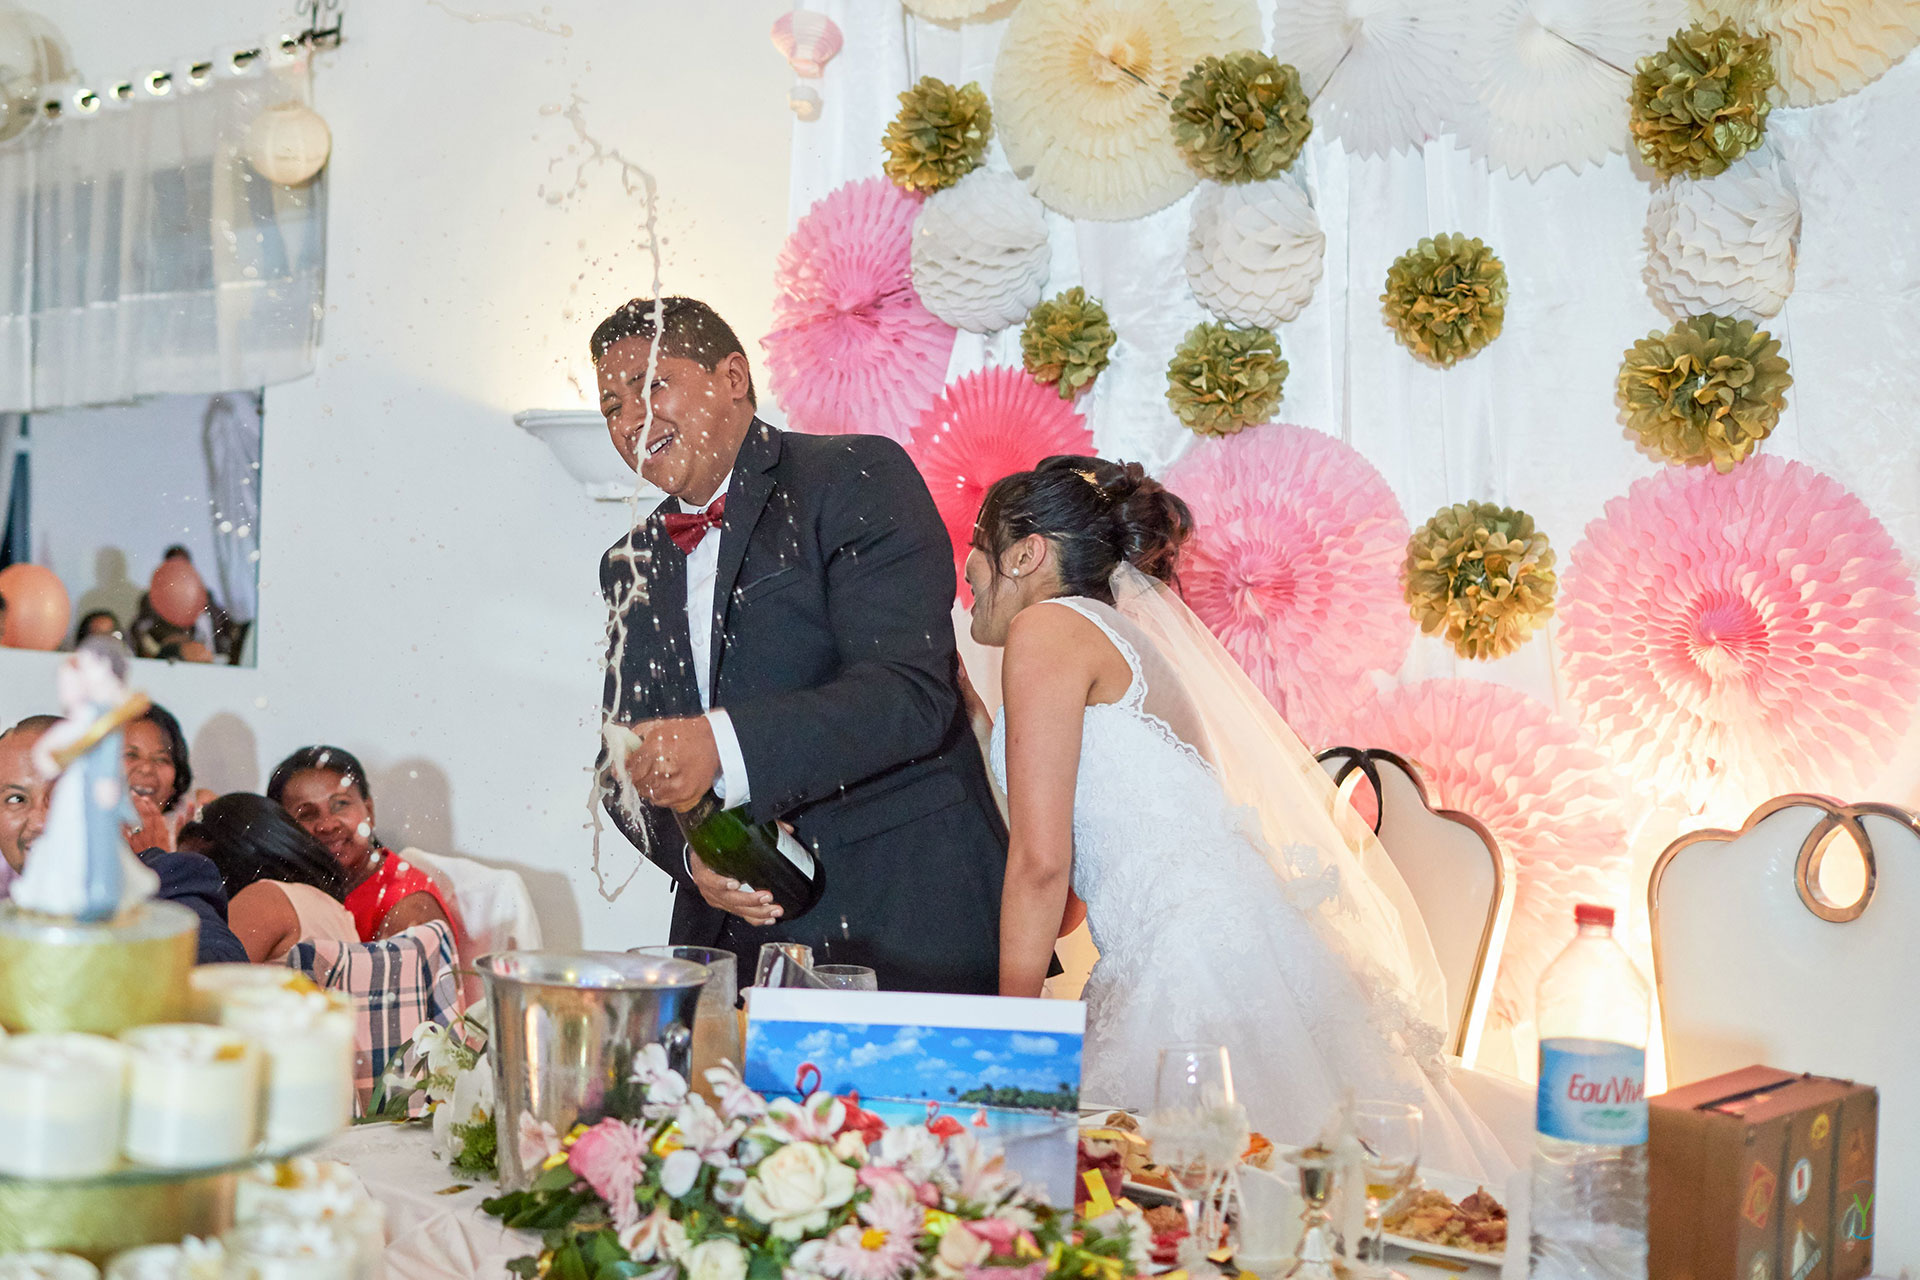 0653_Mariage_Mbola_Hoby_18-09-22